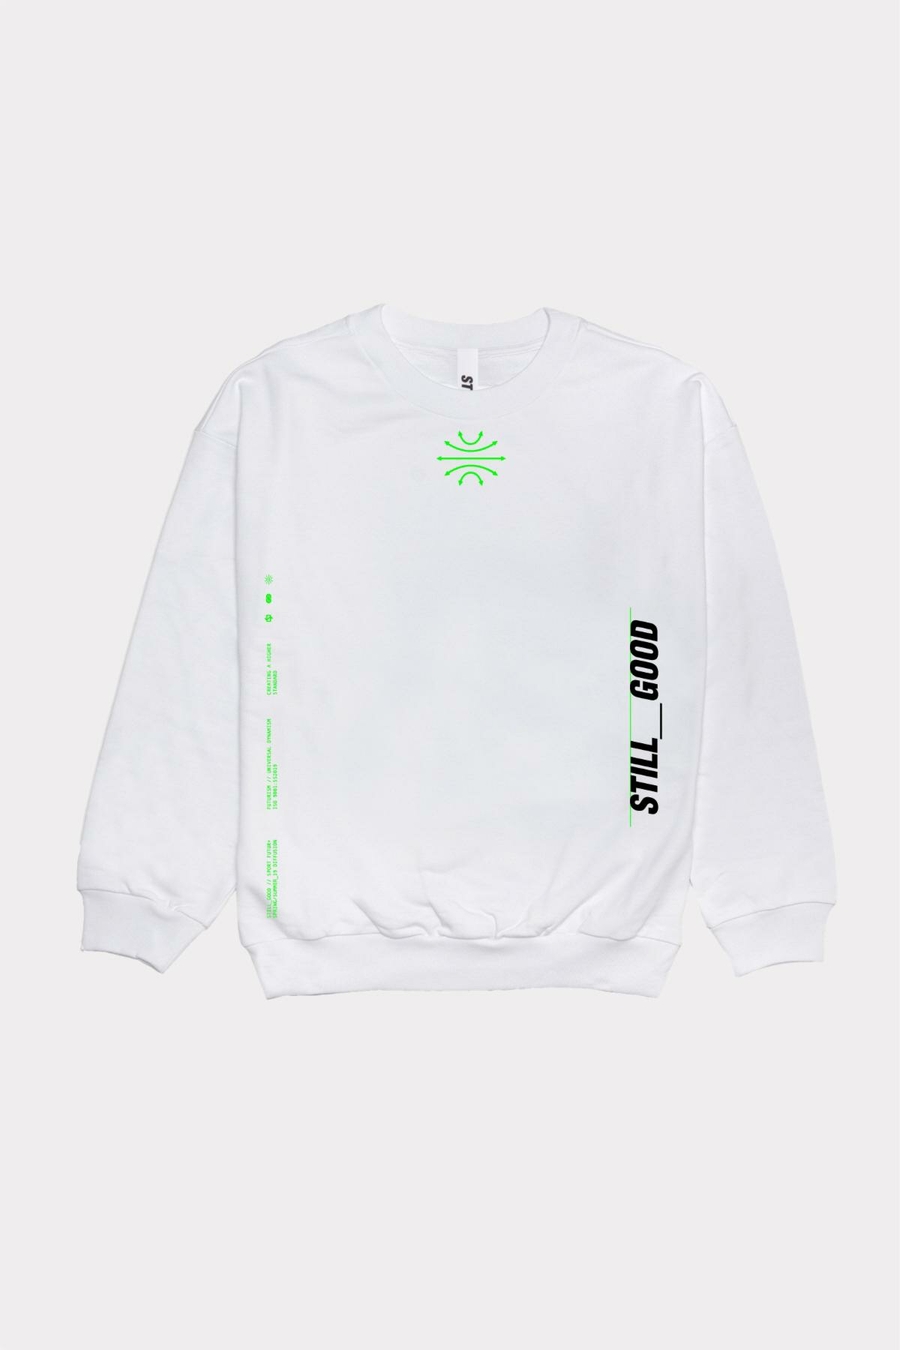 Still Good Global V2 Crewneck